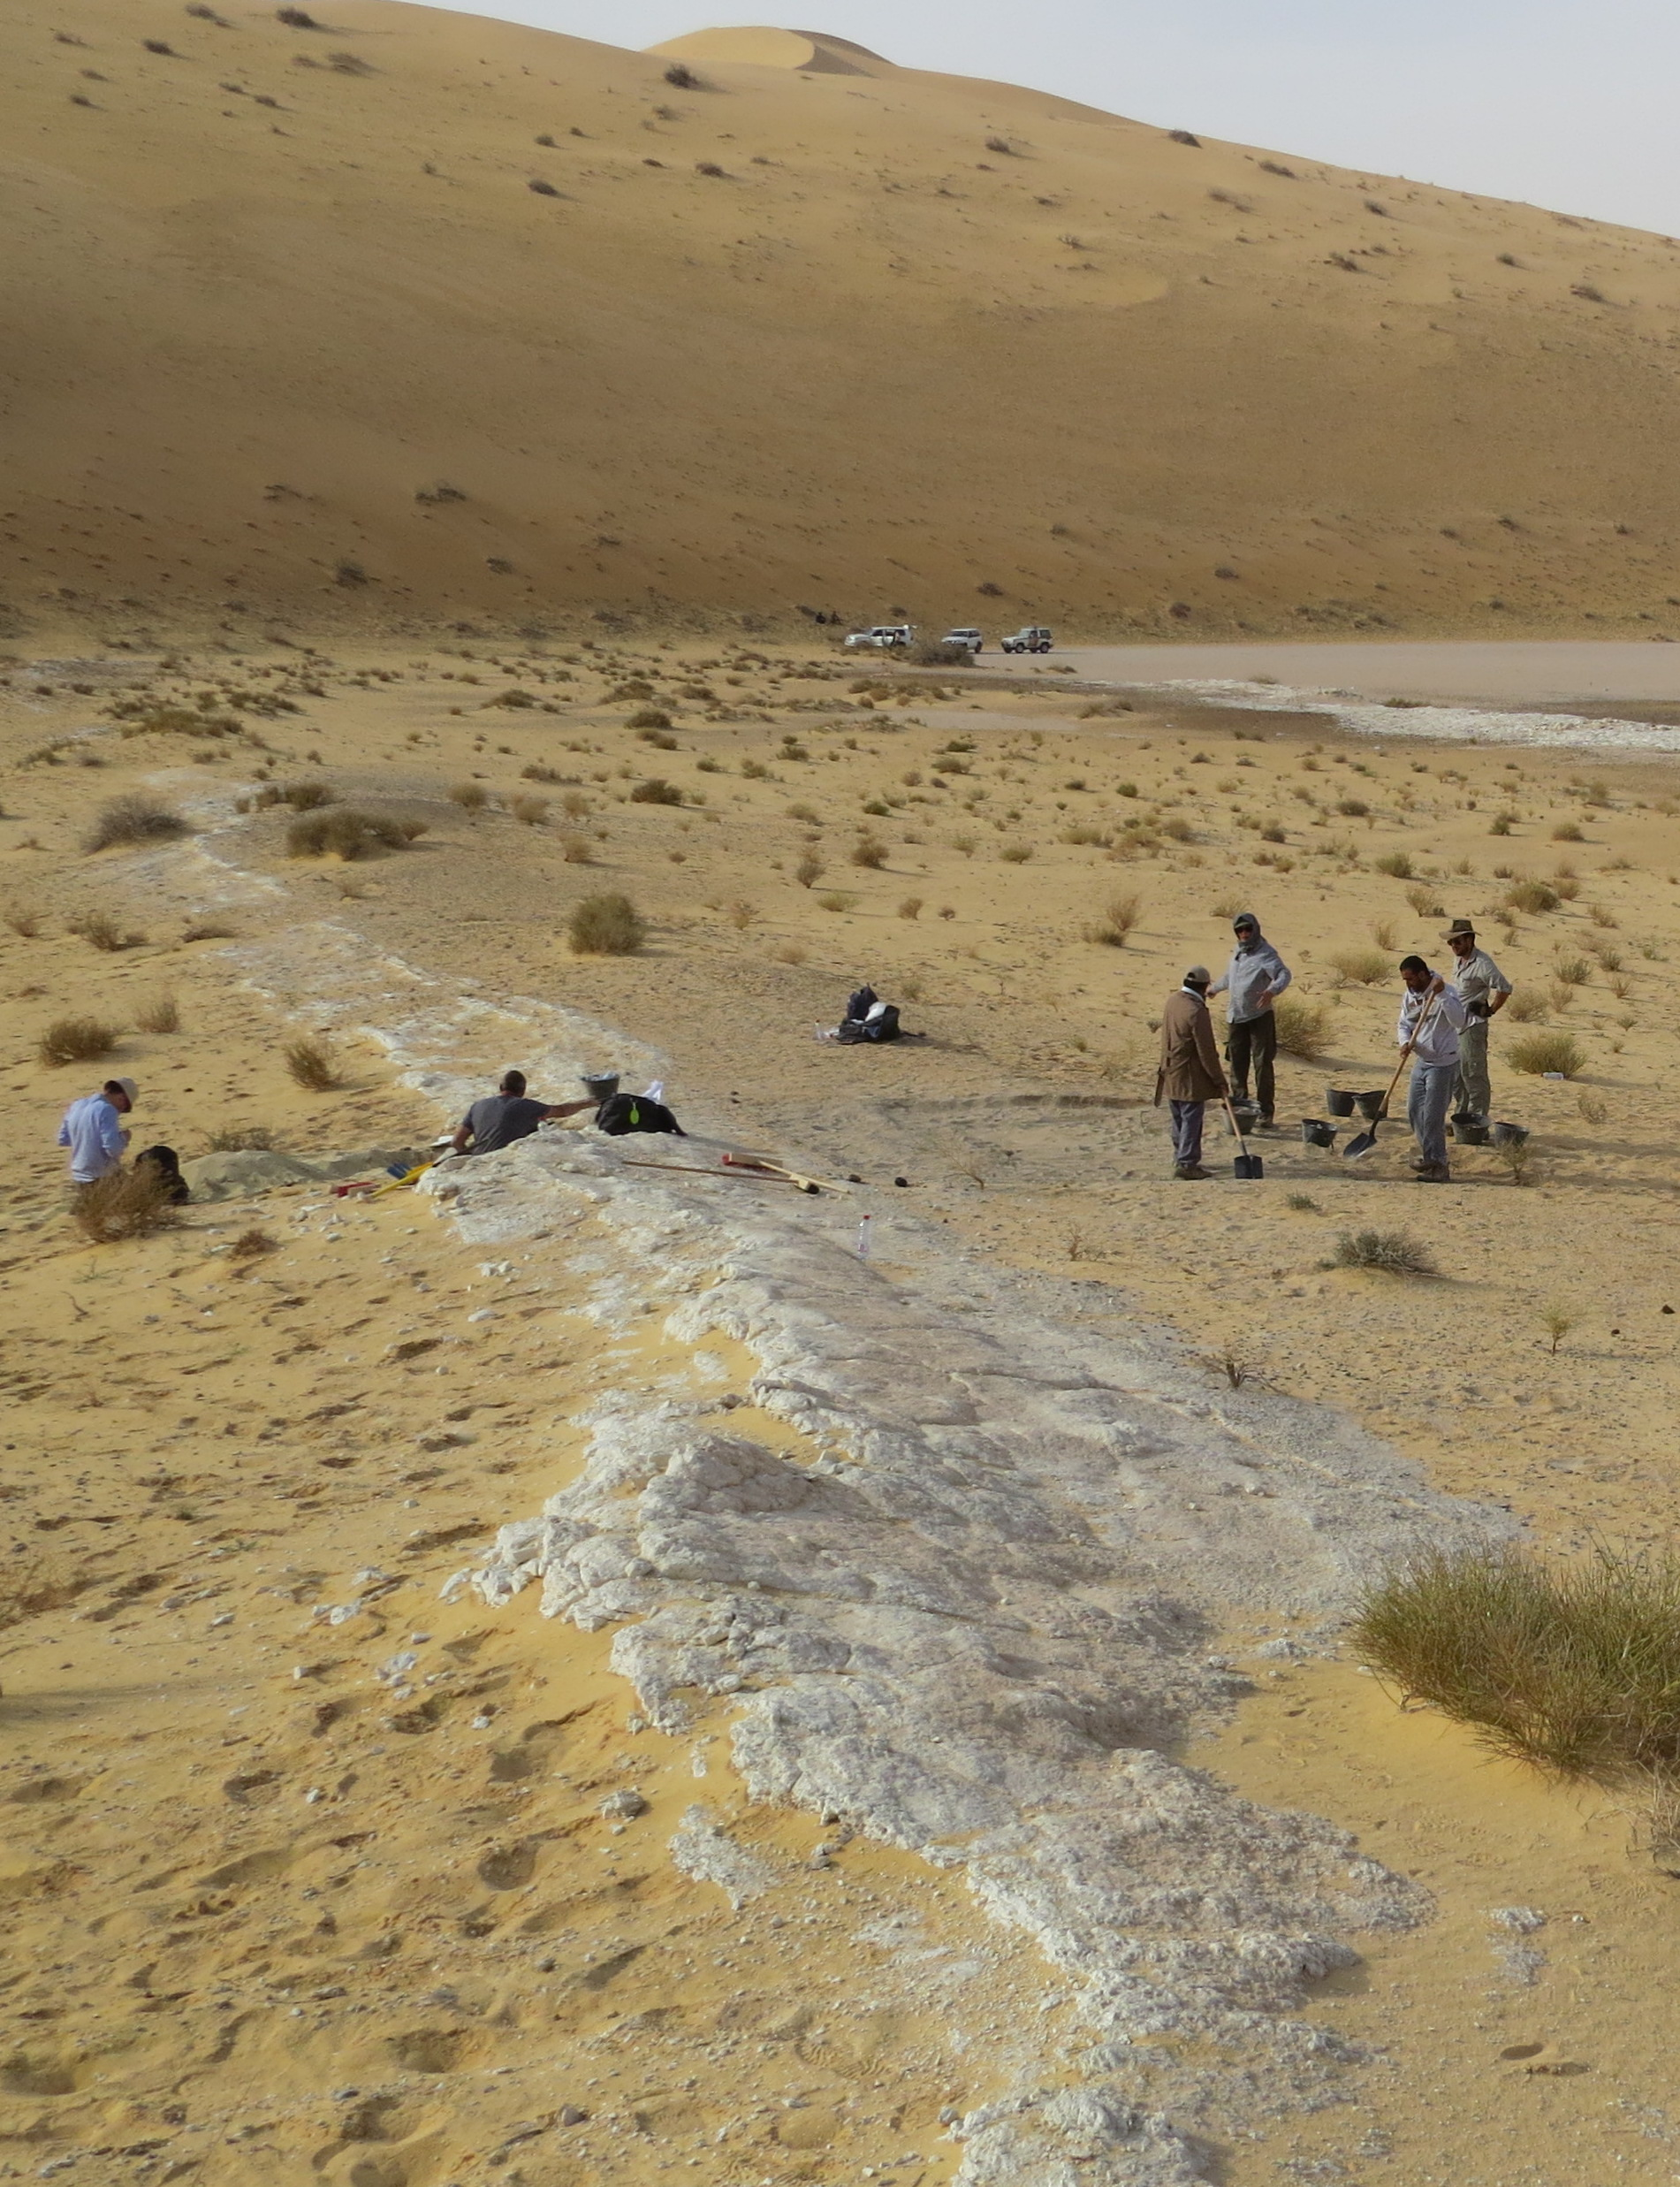 The Al-Wusta Site looked much more hospitable 87,000 years ago.